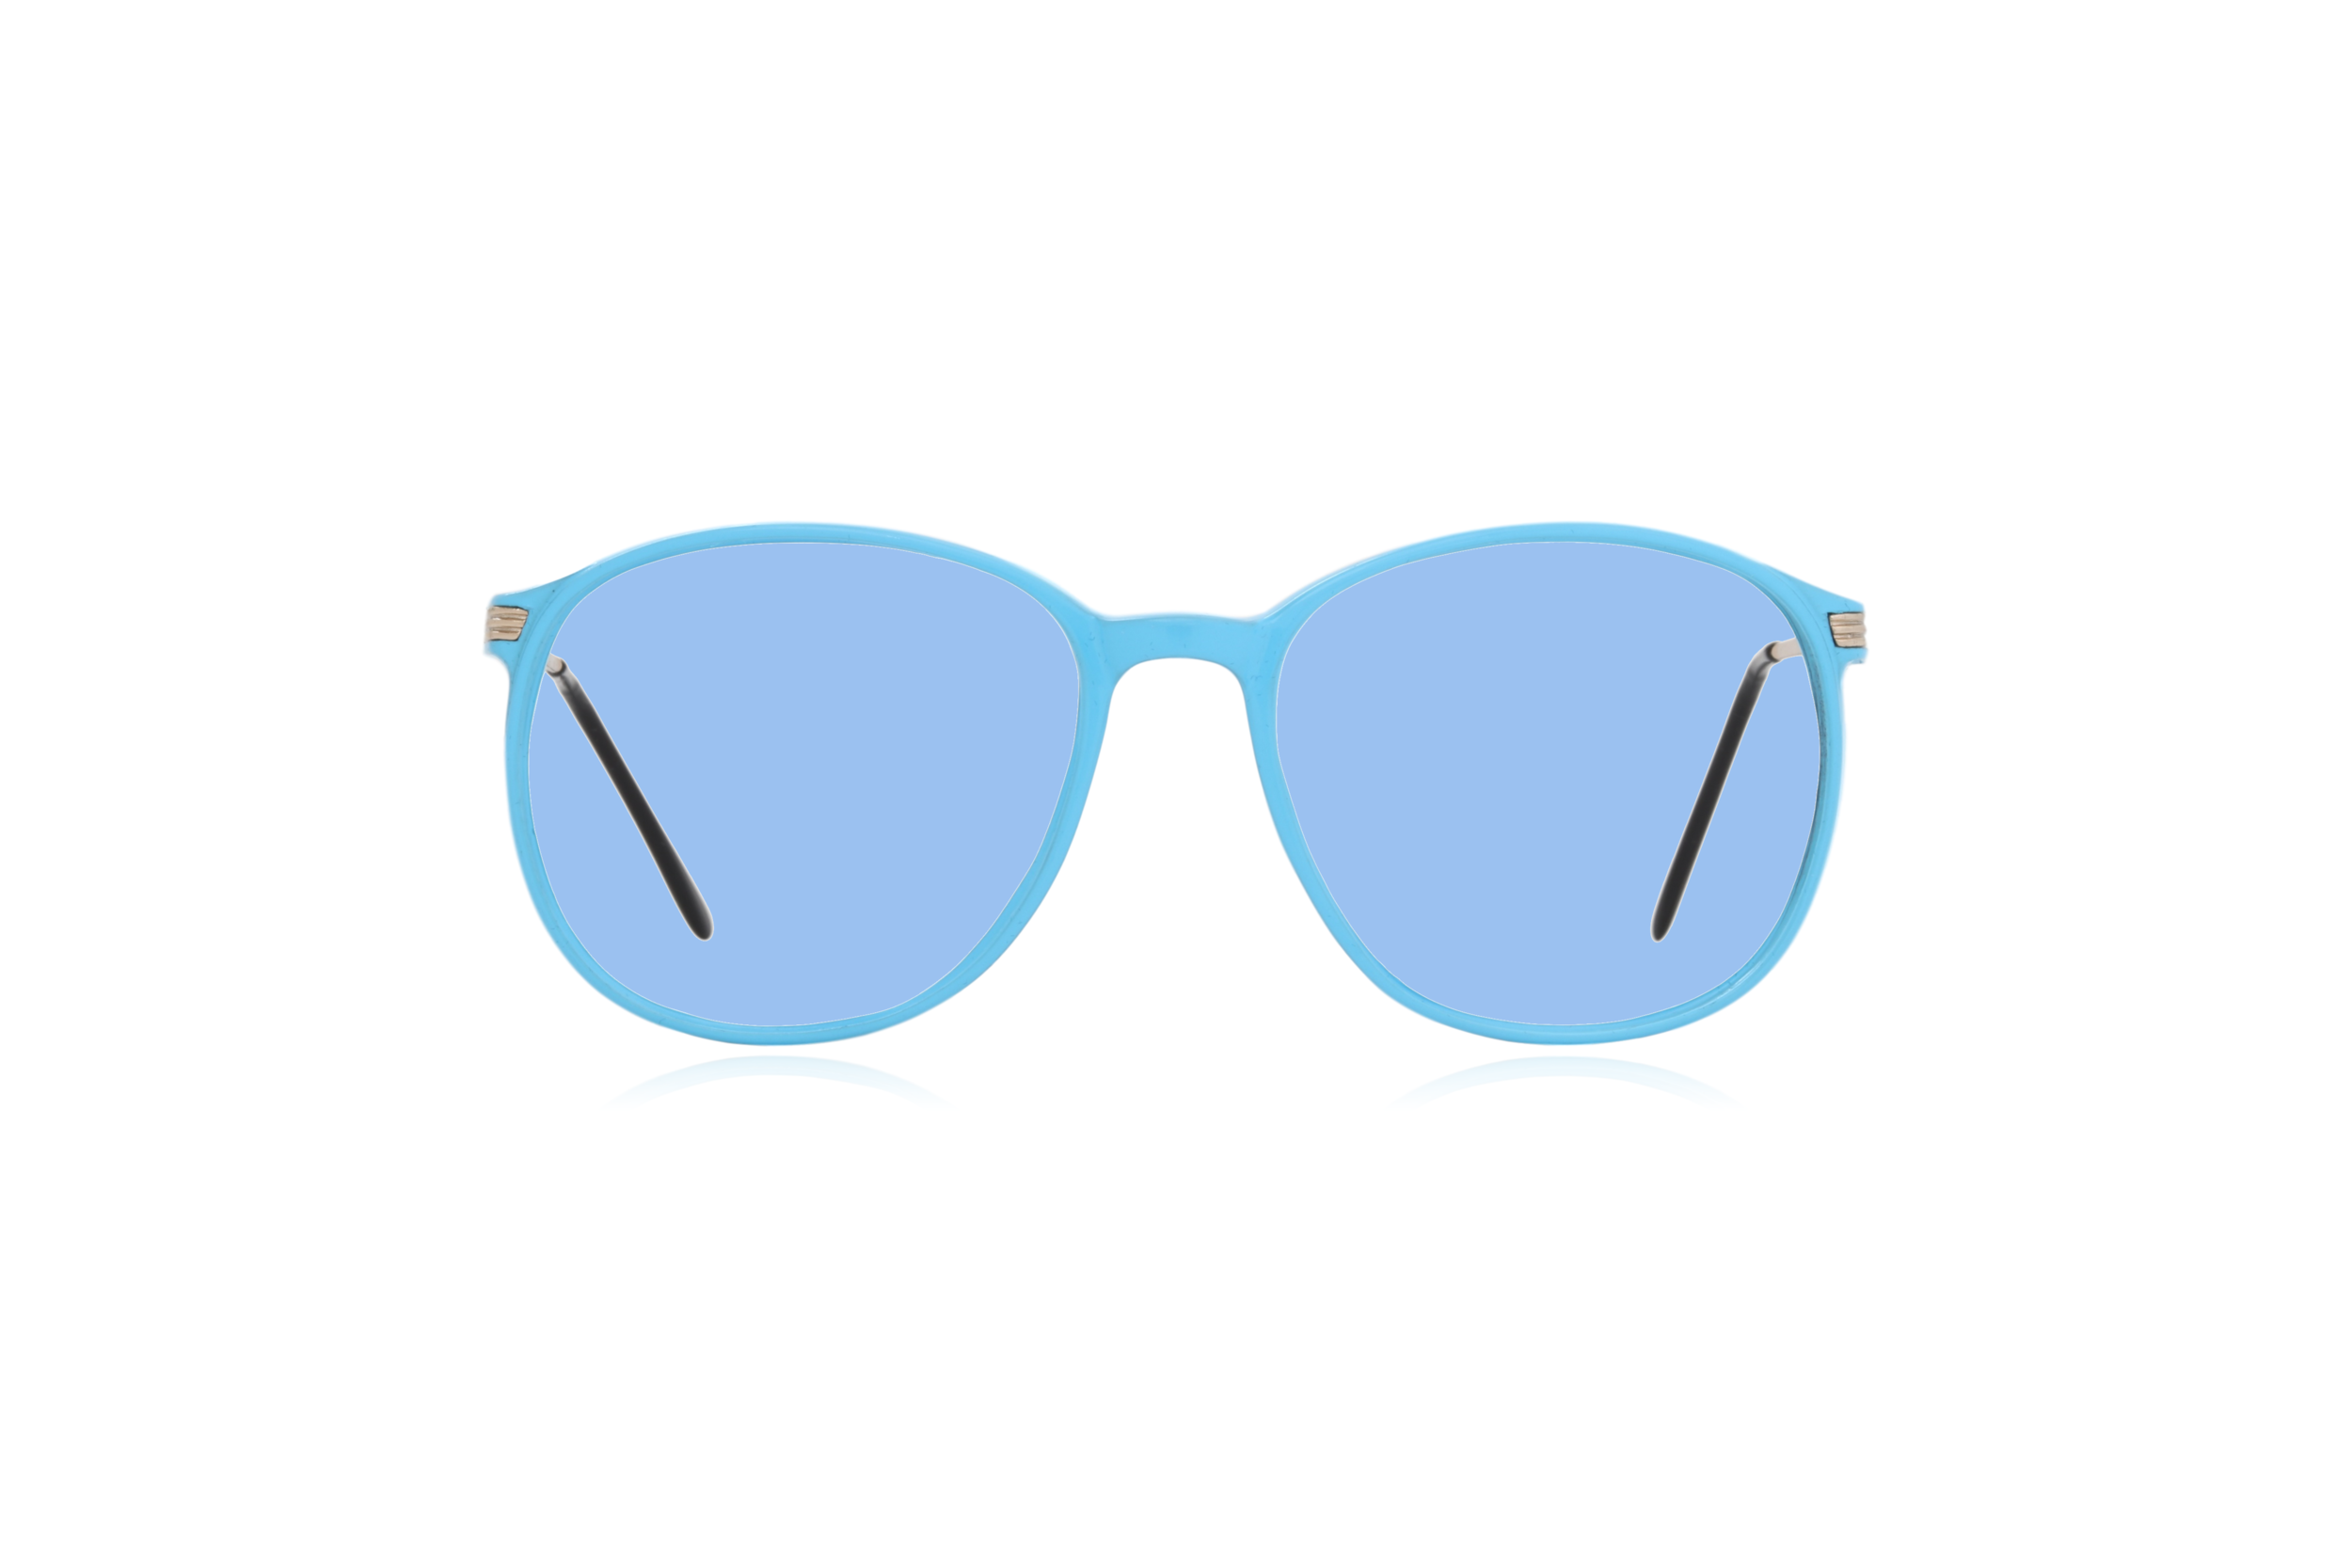 Peep Eyewear, Blue, Carbon, Vintage Glasses, 1980s, Italy, Clipwell, Blue.png